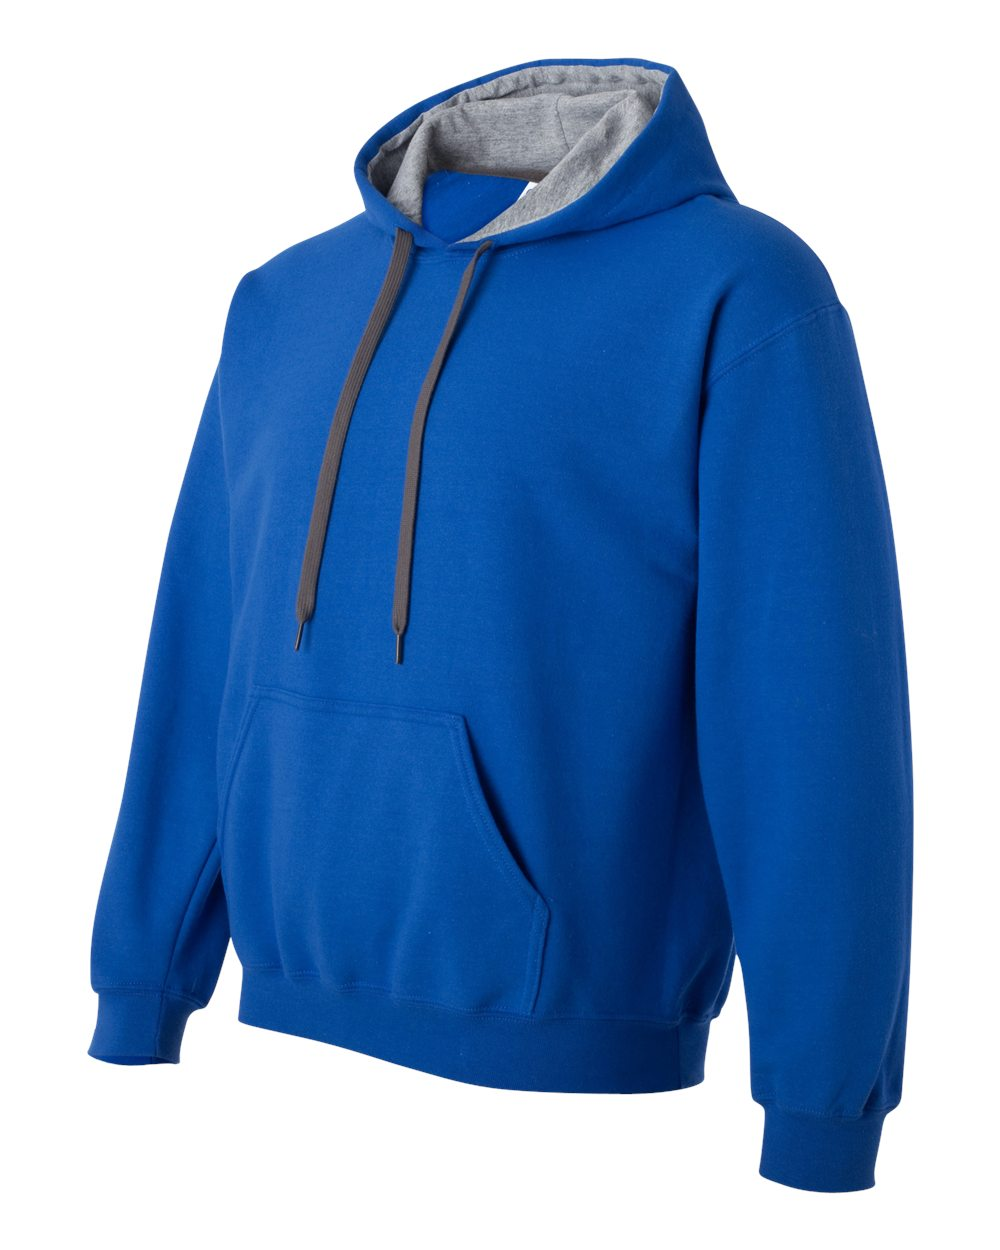 Gildan Heavy Blend Contrasted Hoodie GI185C00 Royal Blue - Sport Grey